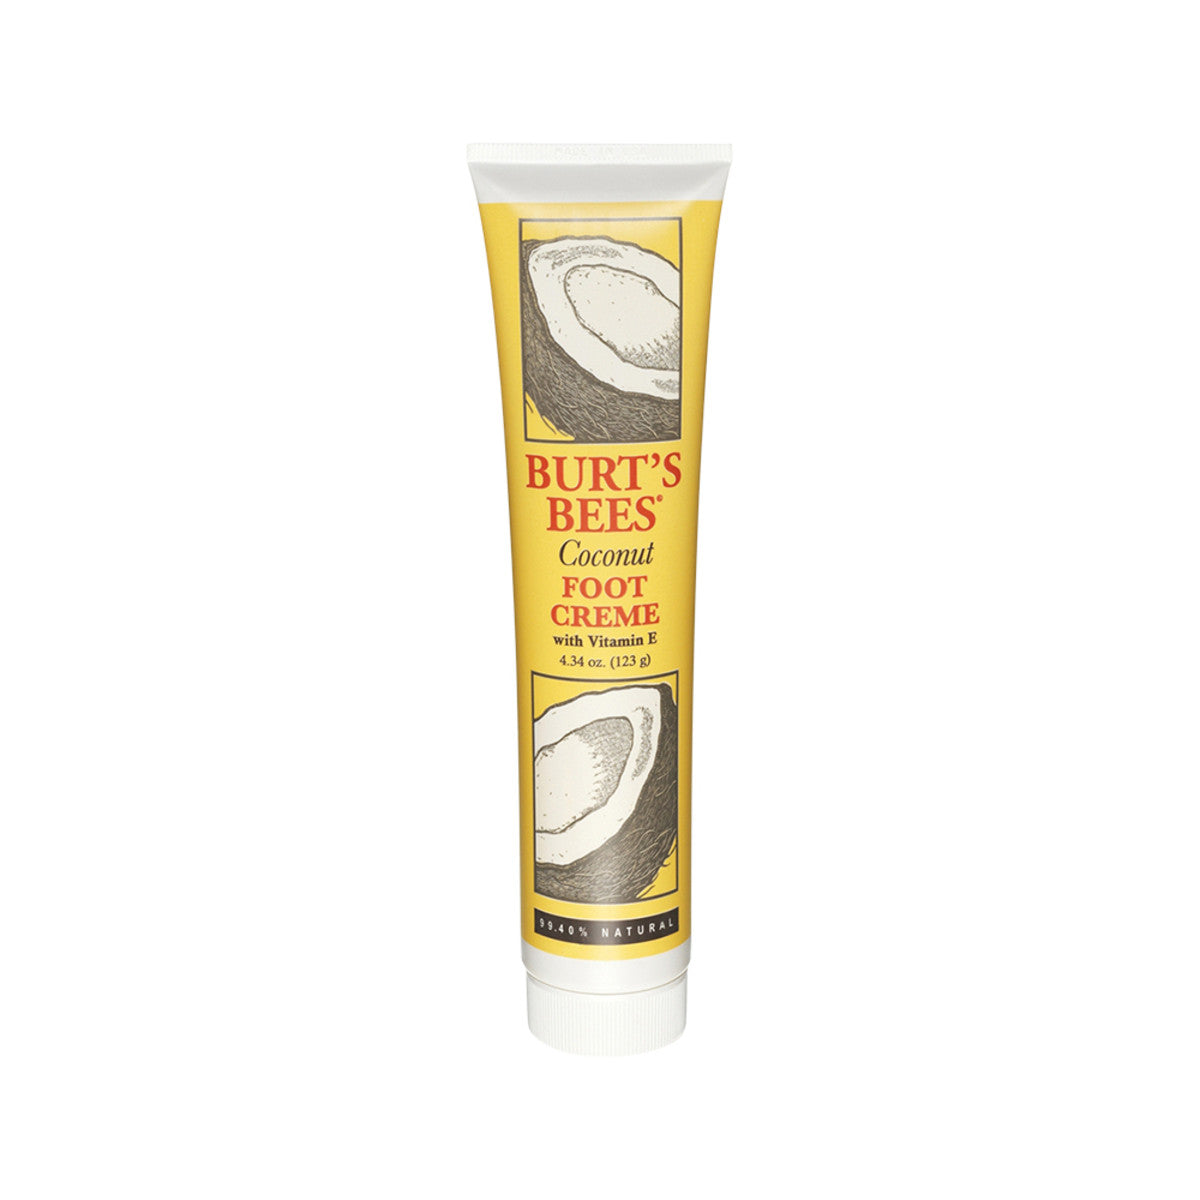 Burts bees coconut foot cream 123g australian organic - Bathroom items that start with g ...